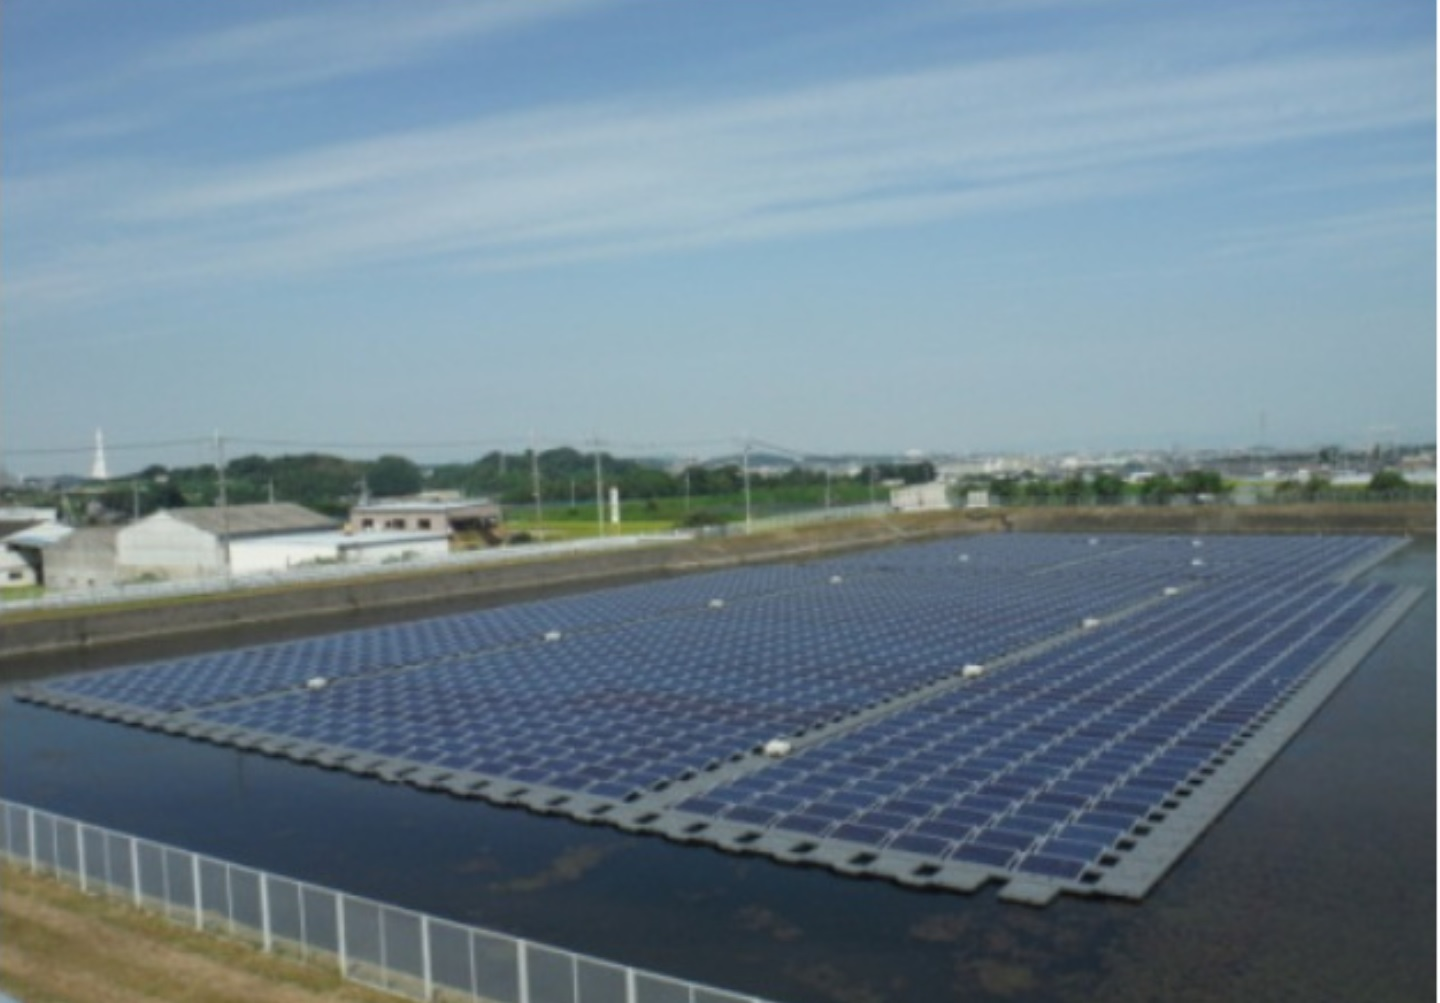 Japan S Largest Floating Solar Plant Being Built The